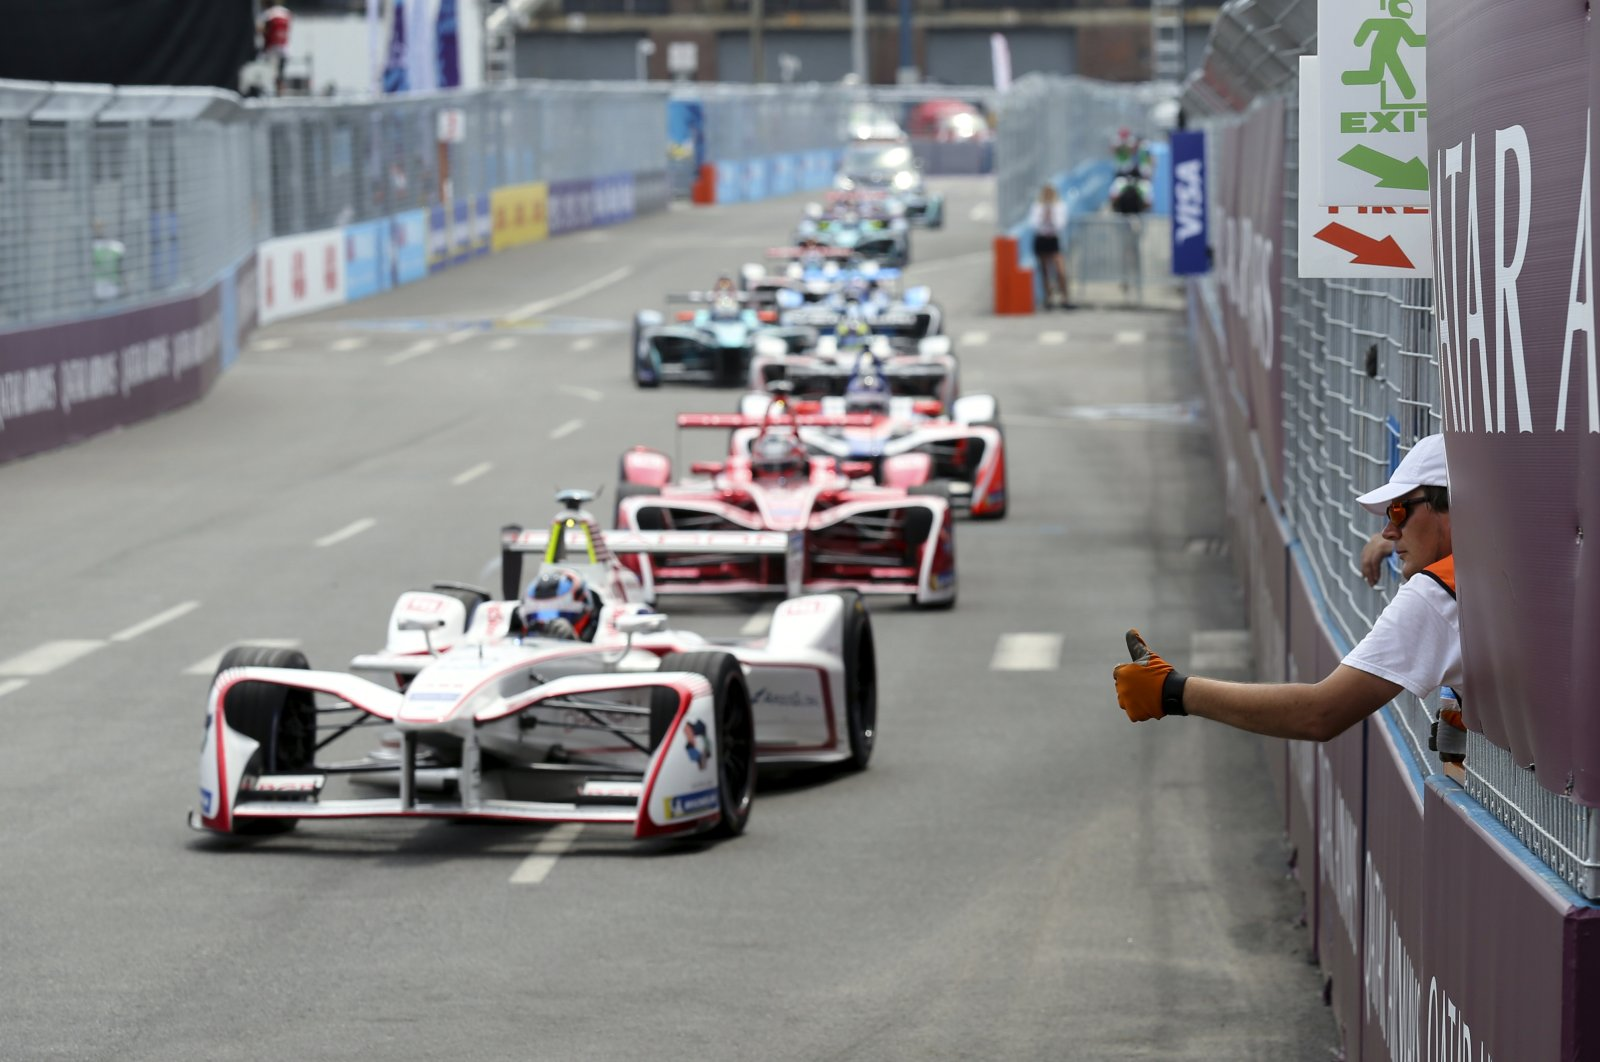 Formula E safety worker gives a thumbs-up to drivers during the second of two auto races in the Formula E championship, in New York City, New York, U.S., July 15, 2018. (AP Photo)